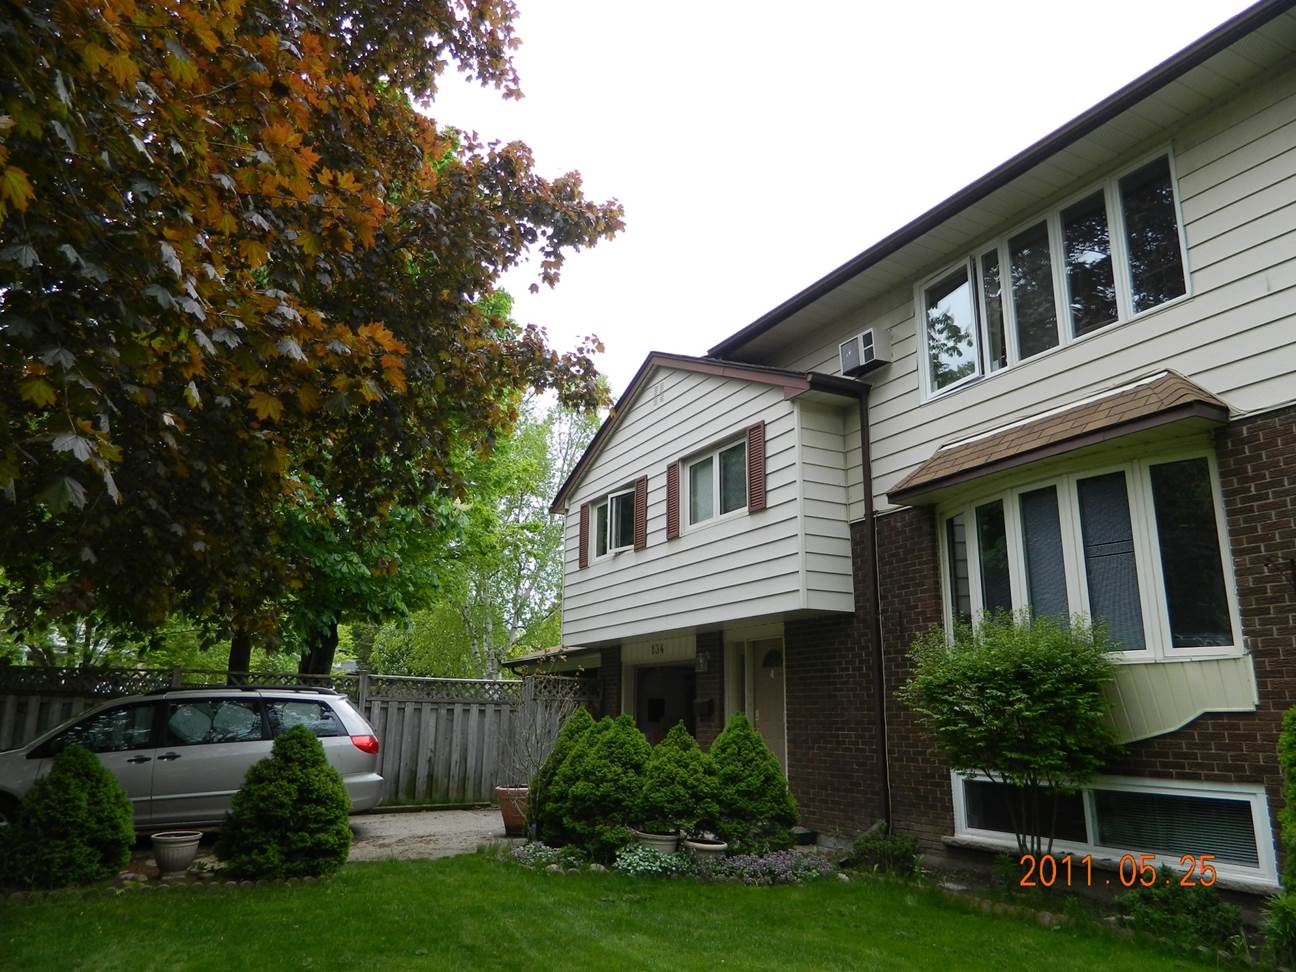 Apartment for rent at 134 Greenbrier Dr, Waterloo, ON.